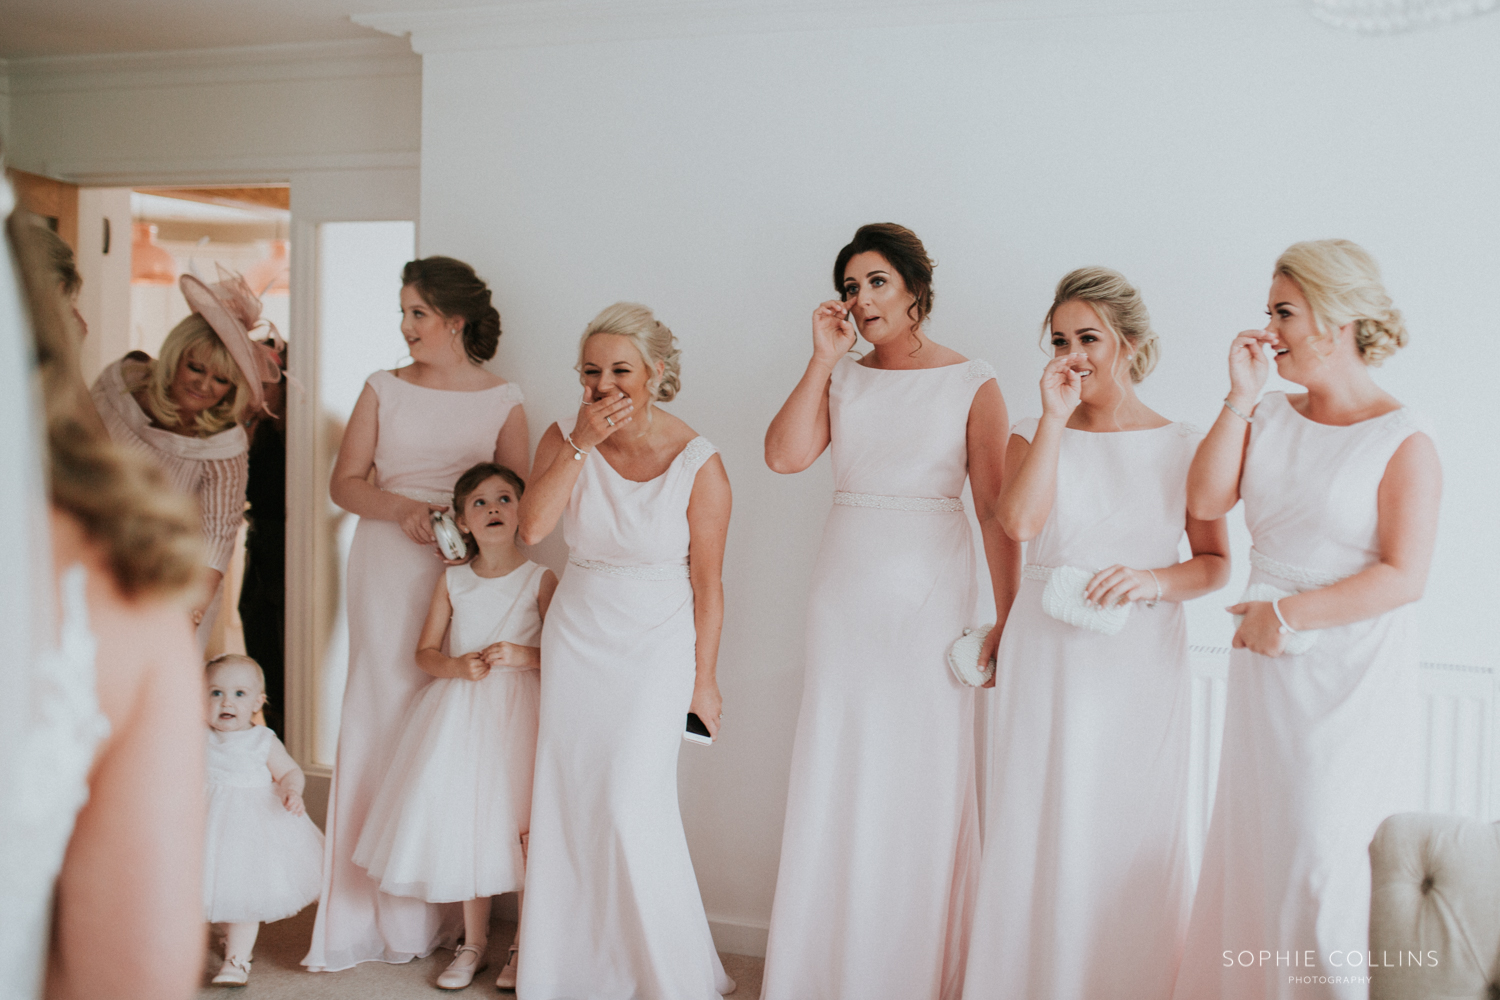 dress reveal to bridesmaids